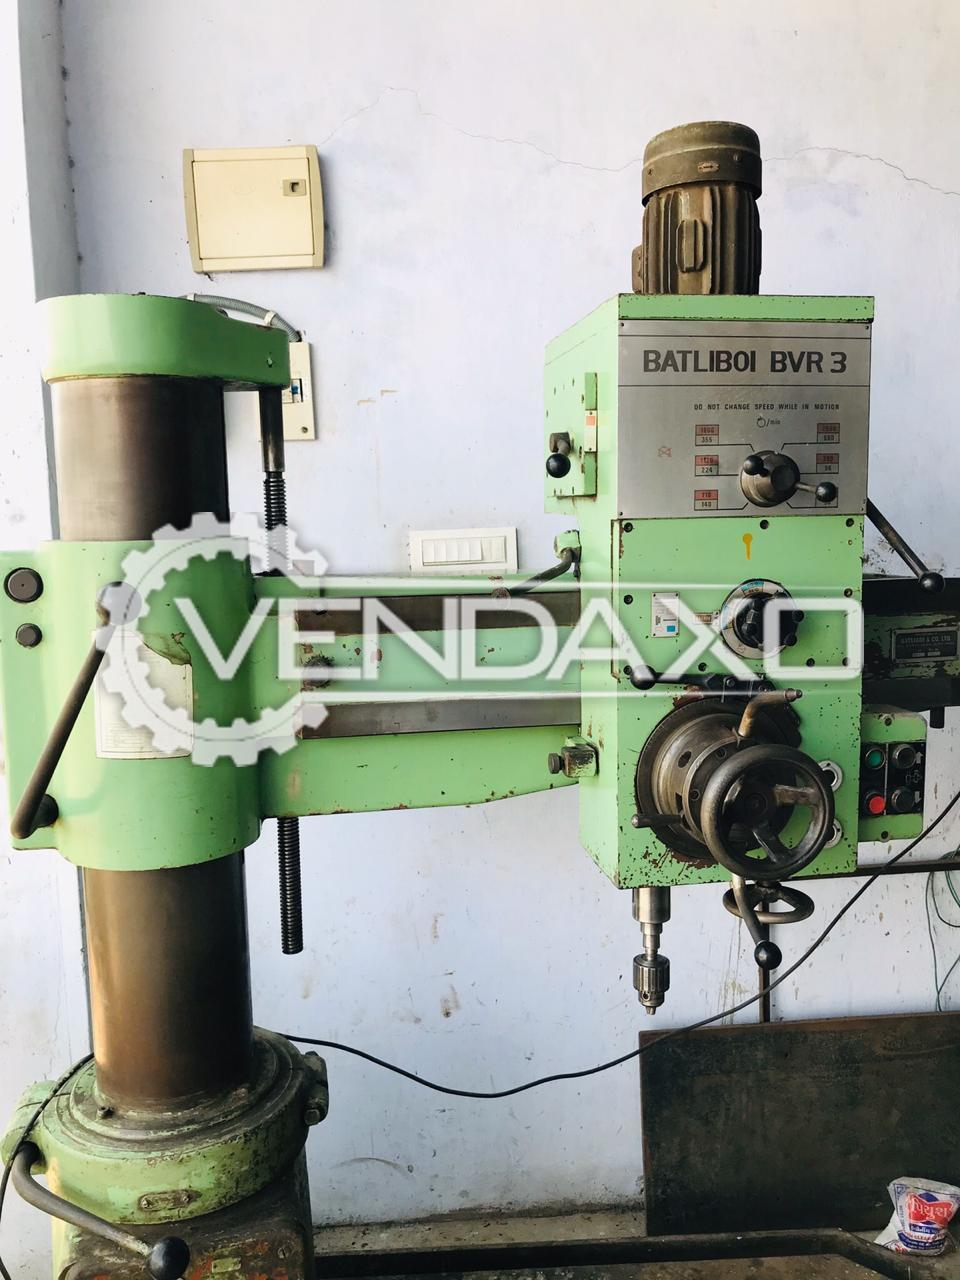 Batliboi BVR-3 Radial Drill Machine - 32 to 35 mm